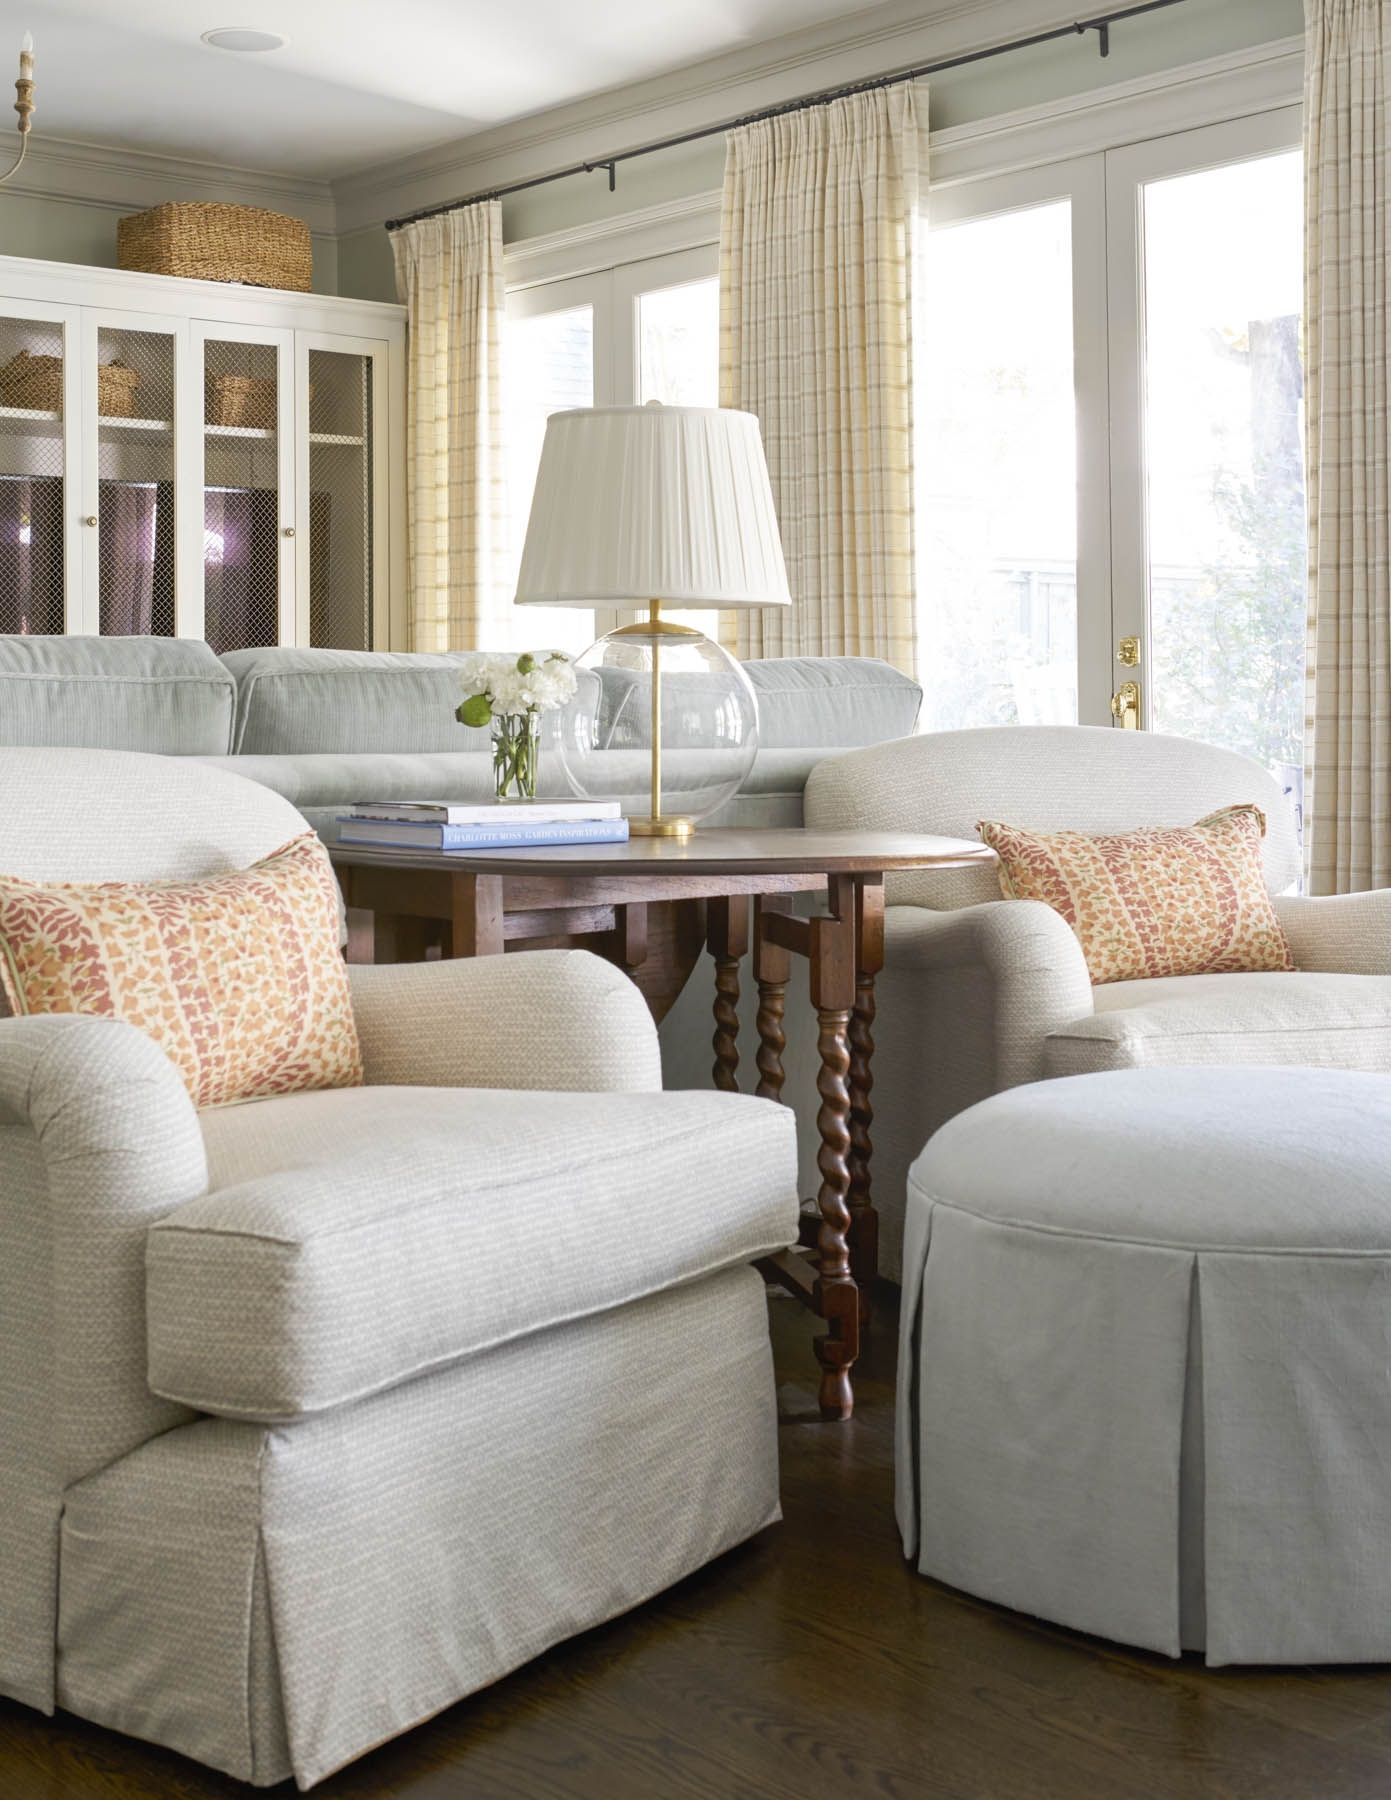 Euclid Traditional  Amy Berry Design  Decorating And Design Fun Adorable Interior Design Ideas Living Room Traditional Inspiration Design